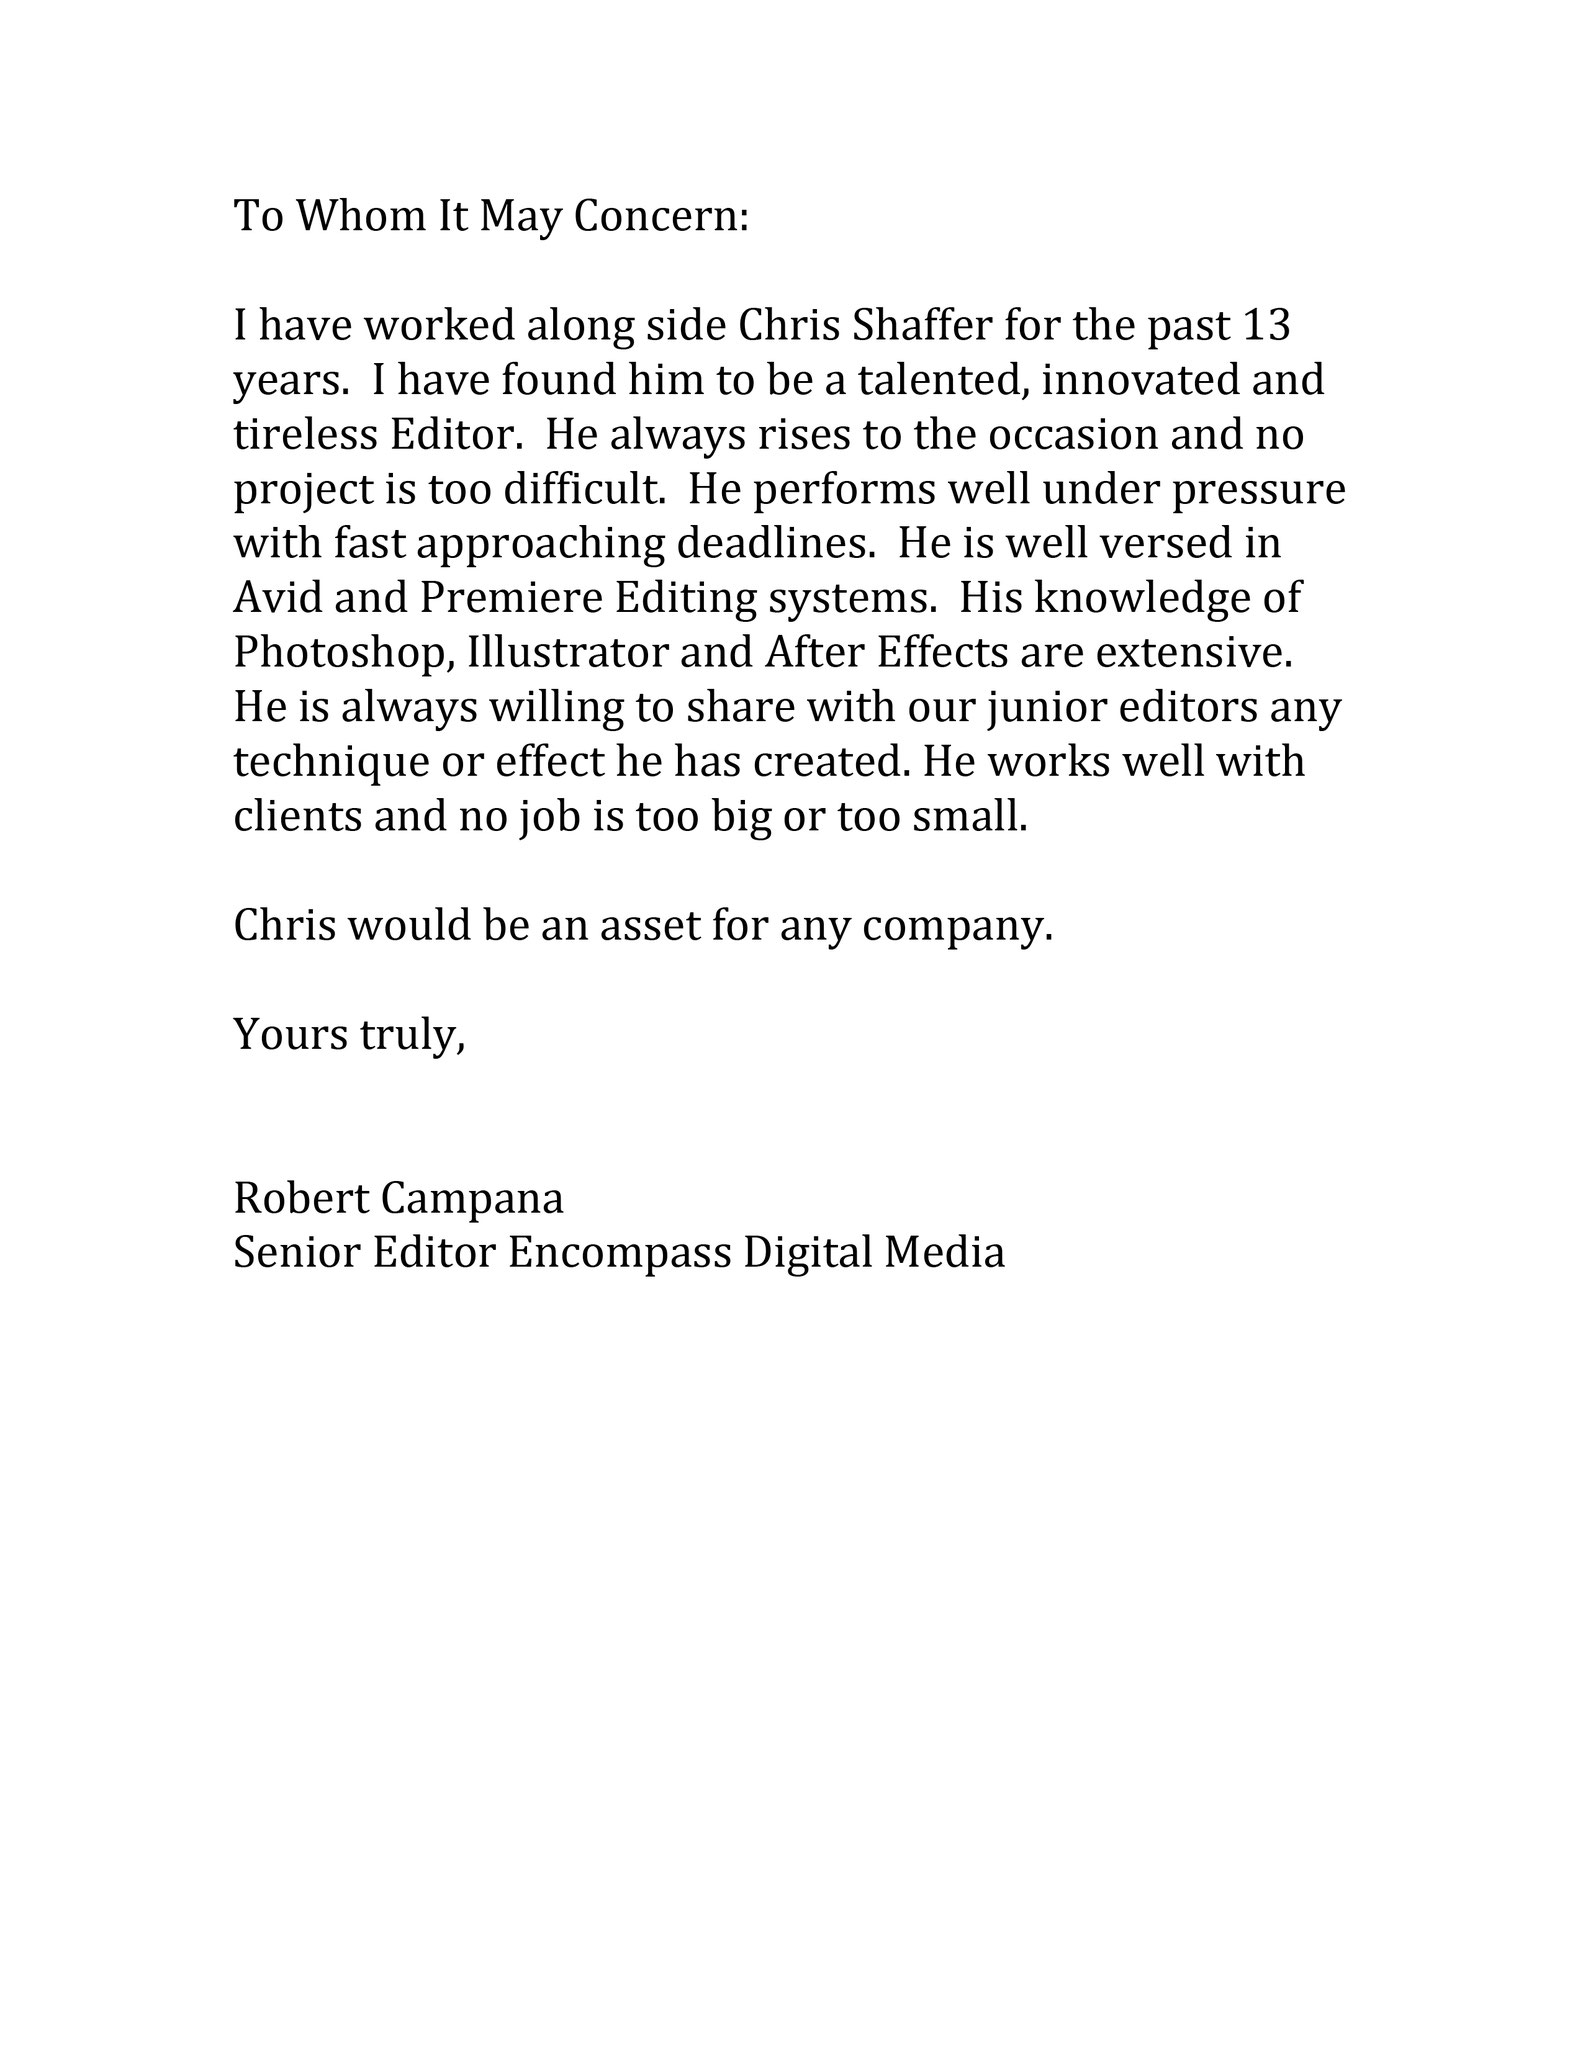 Reference from Robert Campana • Senior Editor • Encompass Digital Media